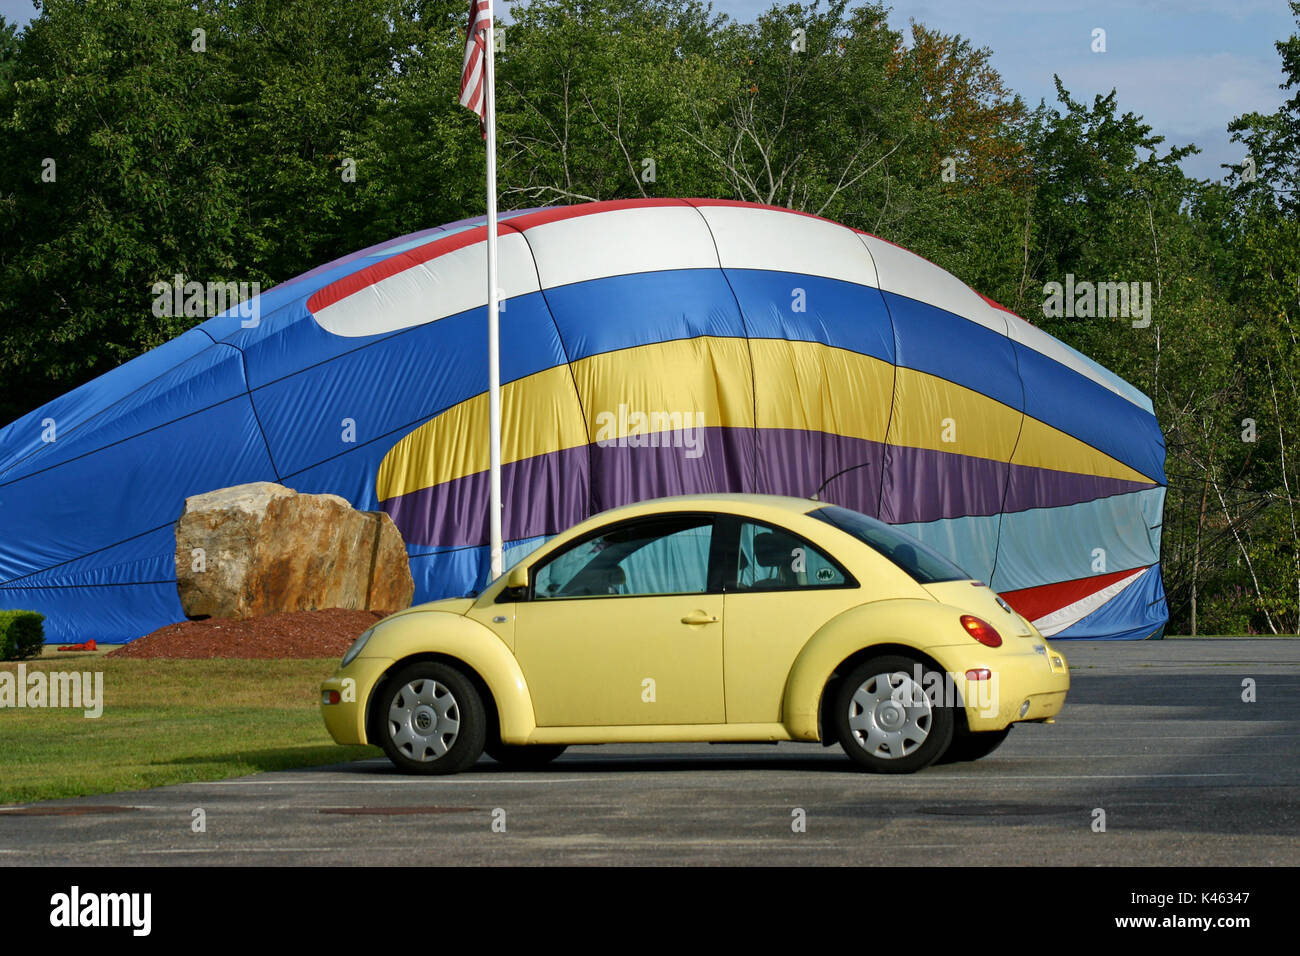 A 1999 yellow Volkswagen Beetle juxtaposed in front of a partially inflated, collapsing hot air balloon Stock Photo